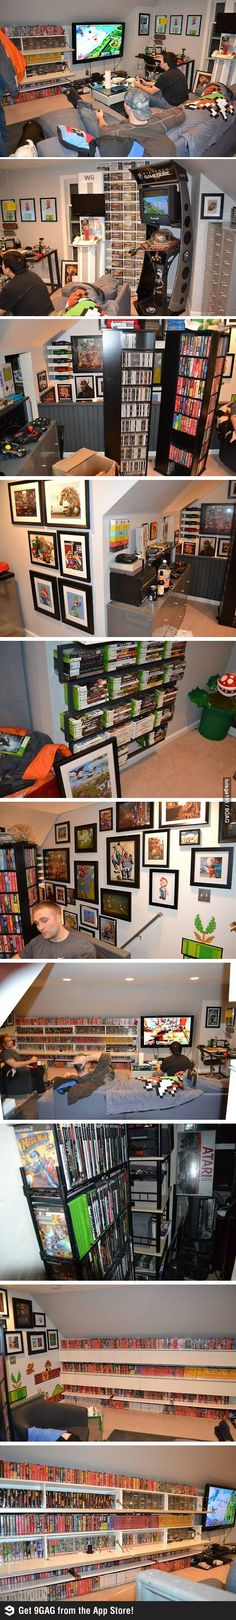 The dream of every gamer in the world #Gaming